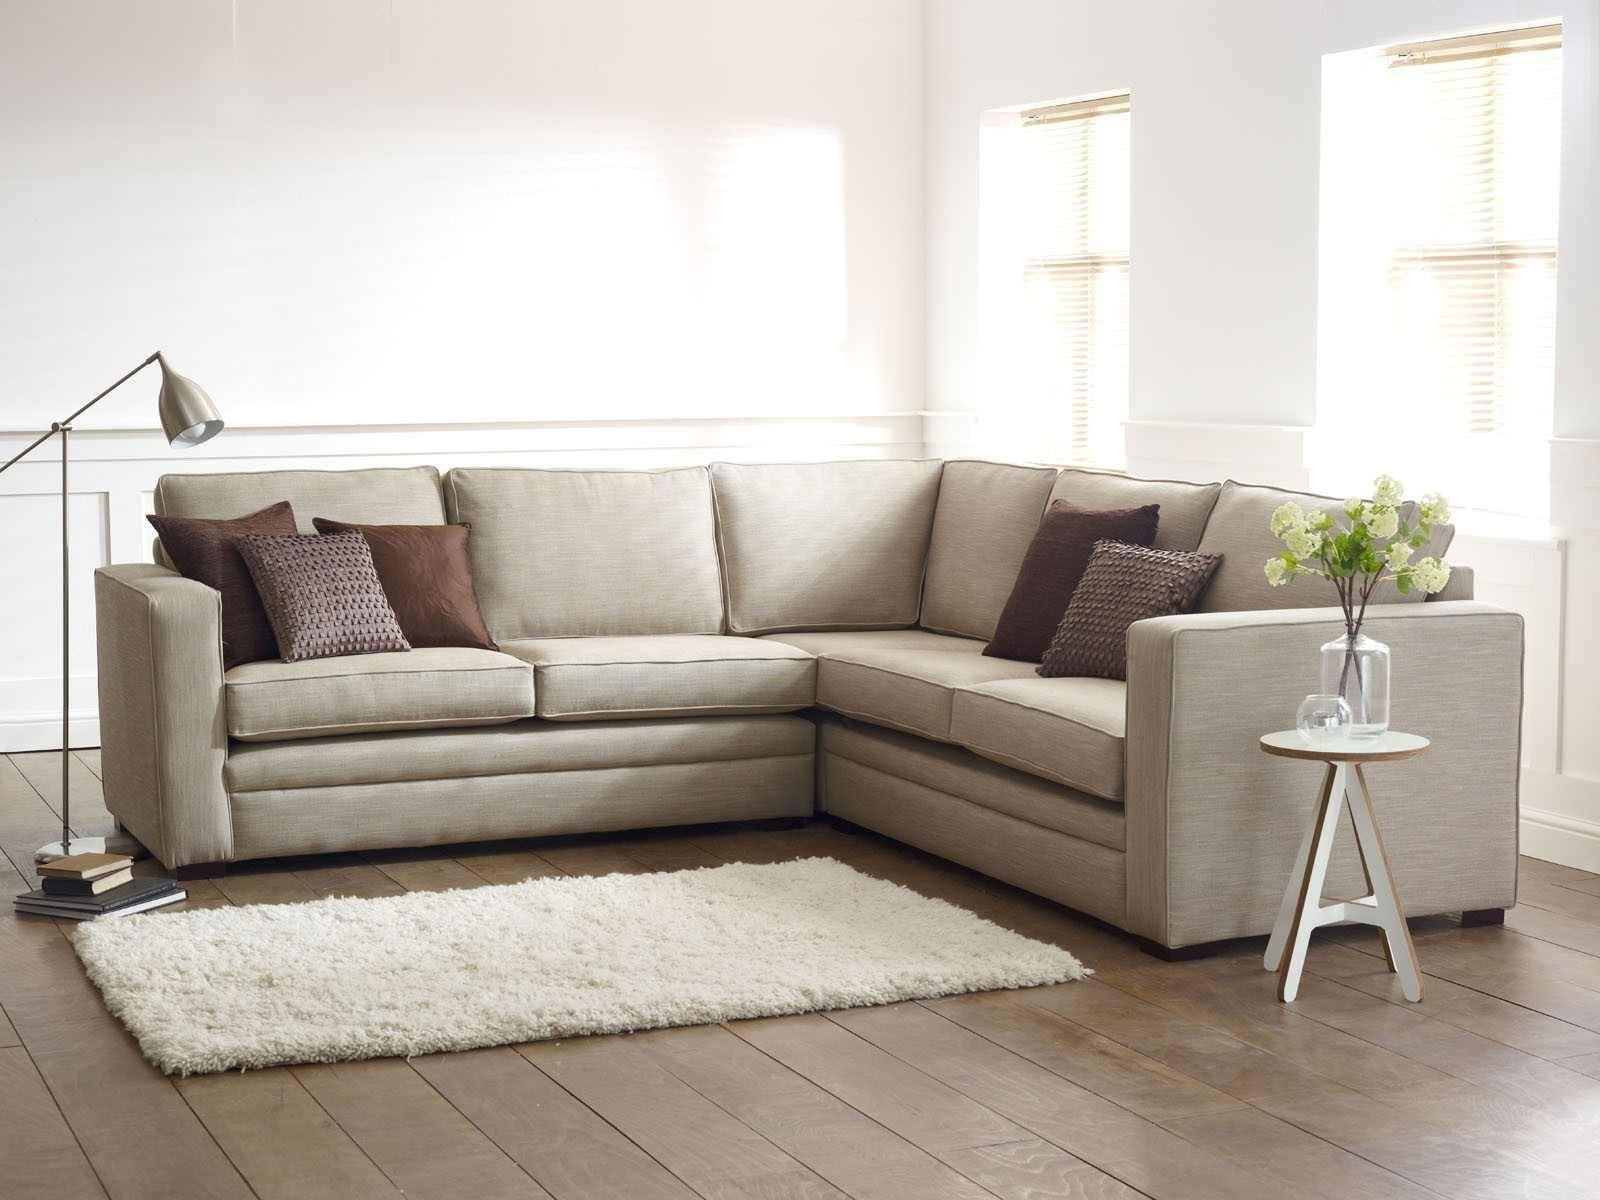 Wonderful Gray Sectional L Shaped Sofa Design Ideas For Living Room Intended For L Shaped Sofas (Image 10 of 10)